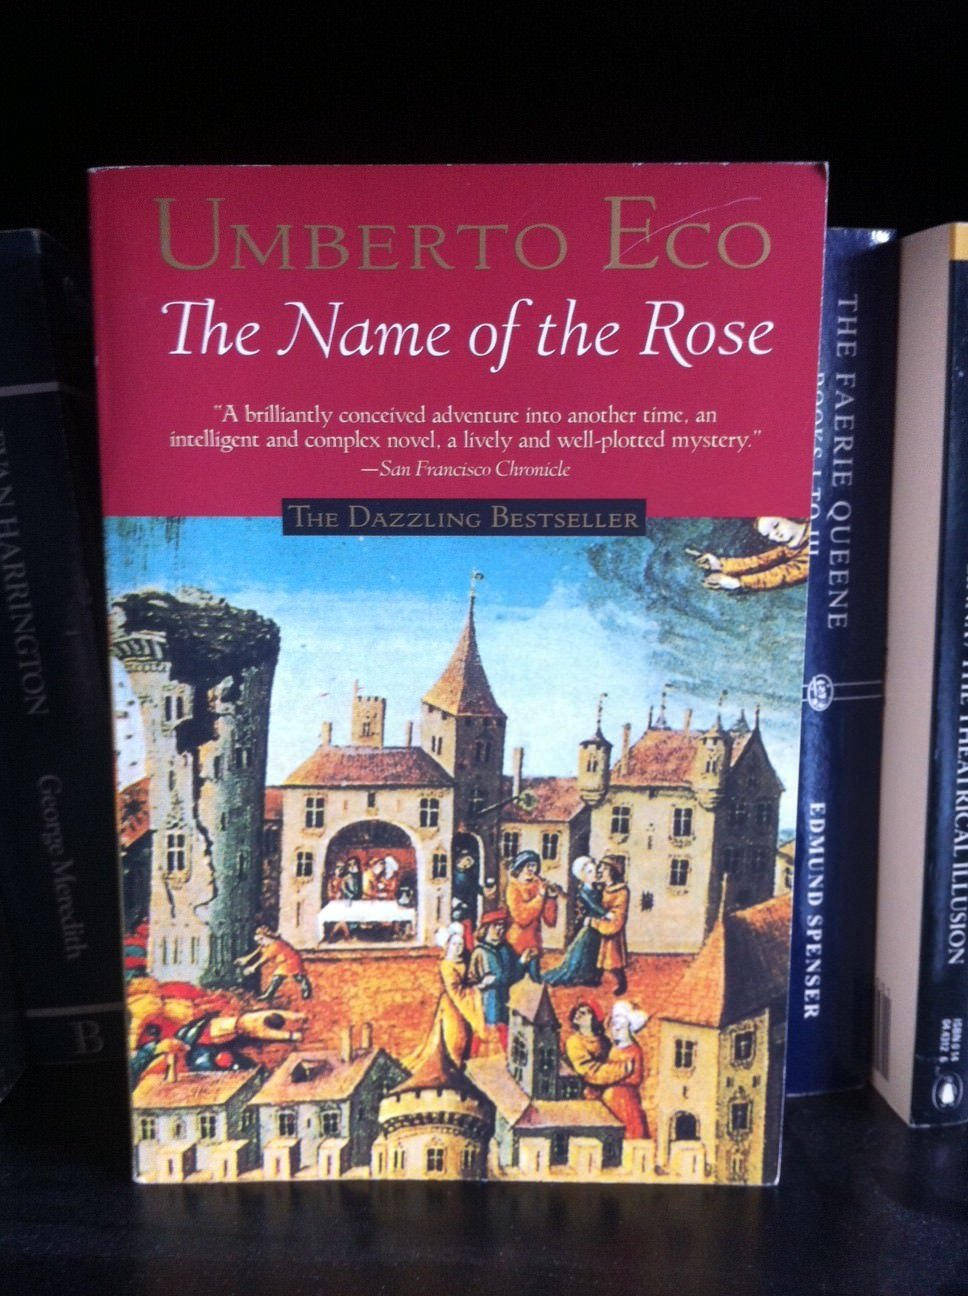 On the surface, this book was an unlikely candidate to become an international bestseller - a book by an Italian professor, it has long digressions into medieval theology and references to a work by Aristotle.